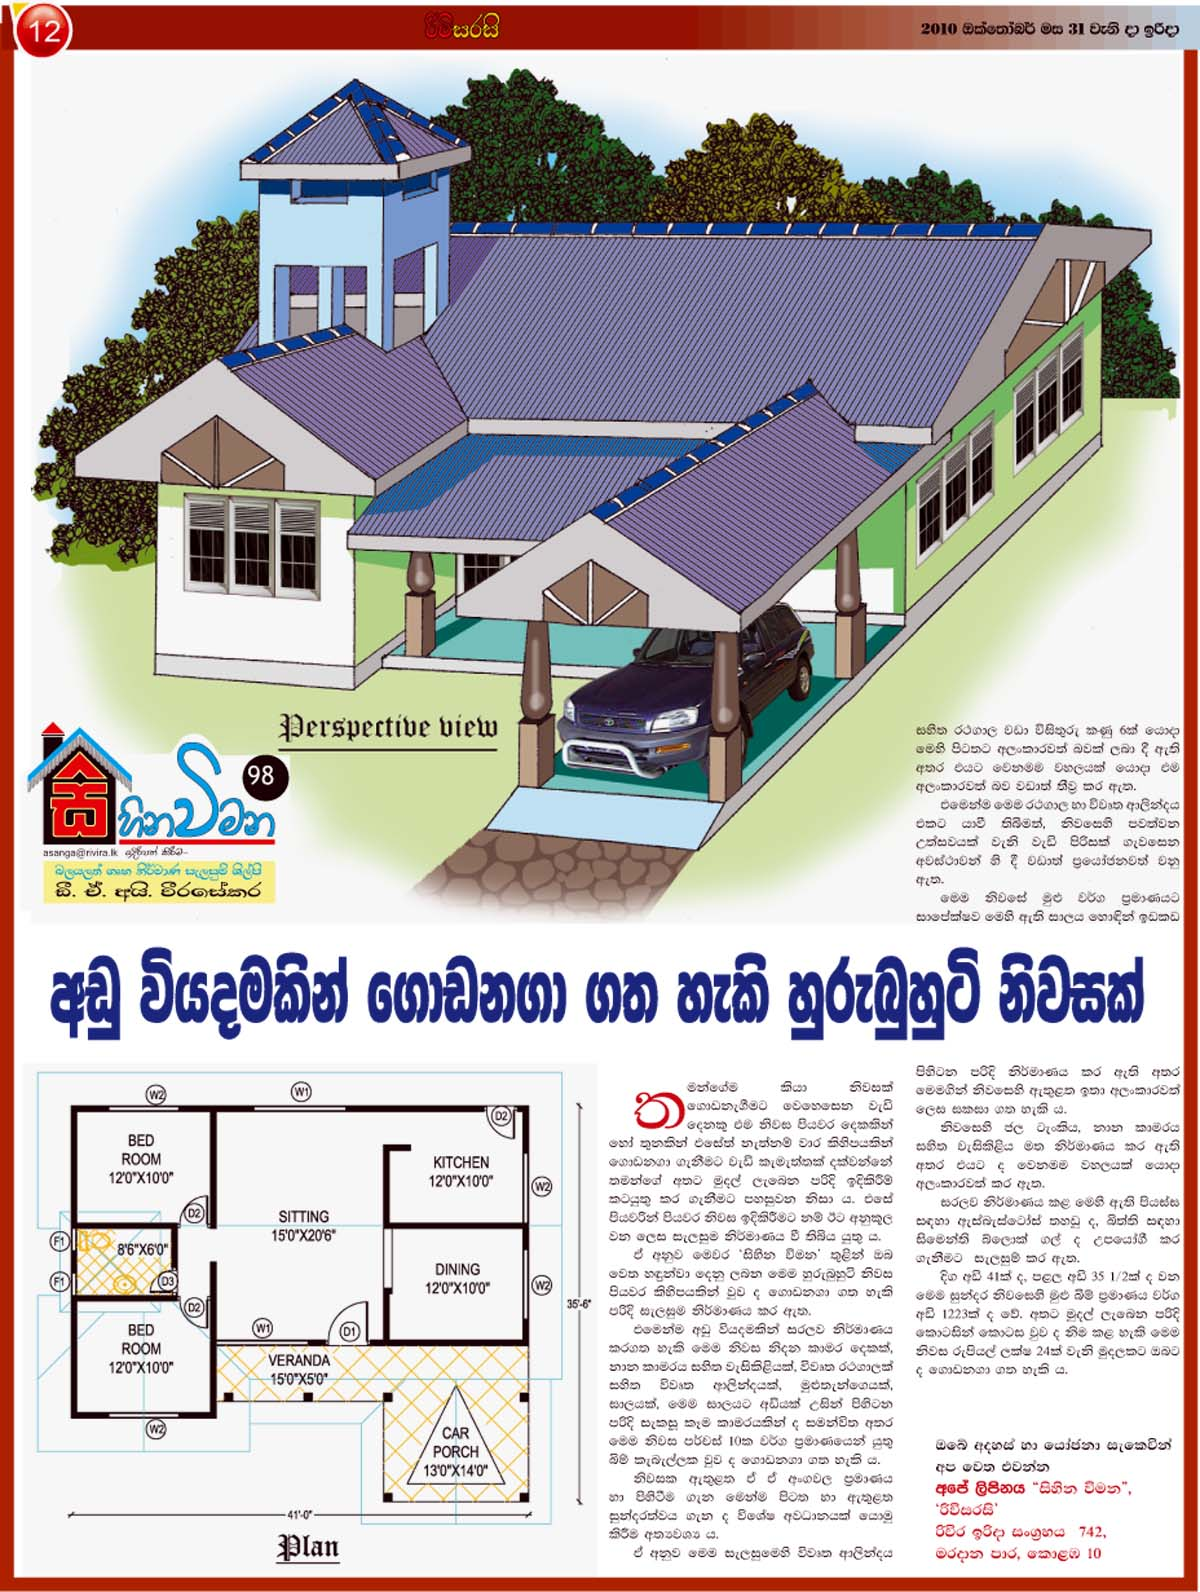 House plans in sri lanka with photos for Sri lankan homes plans